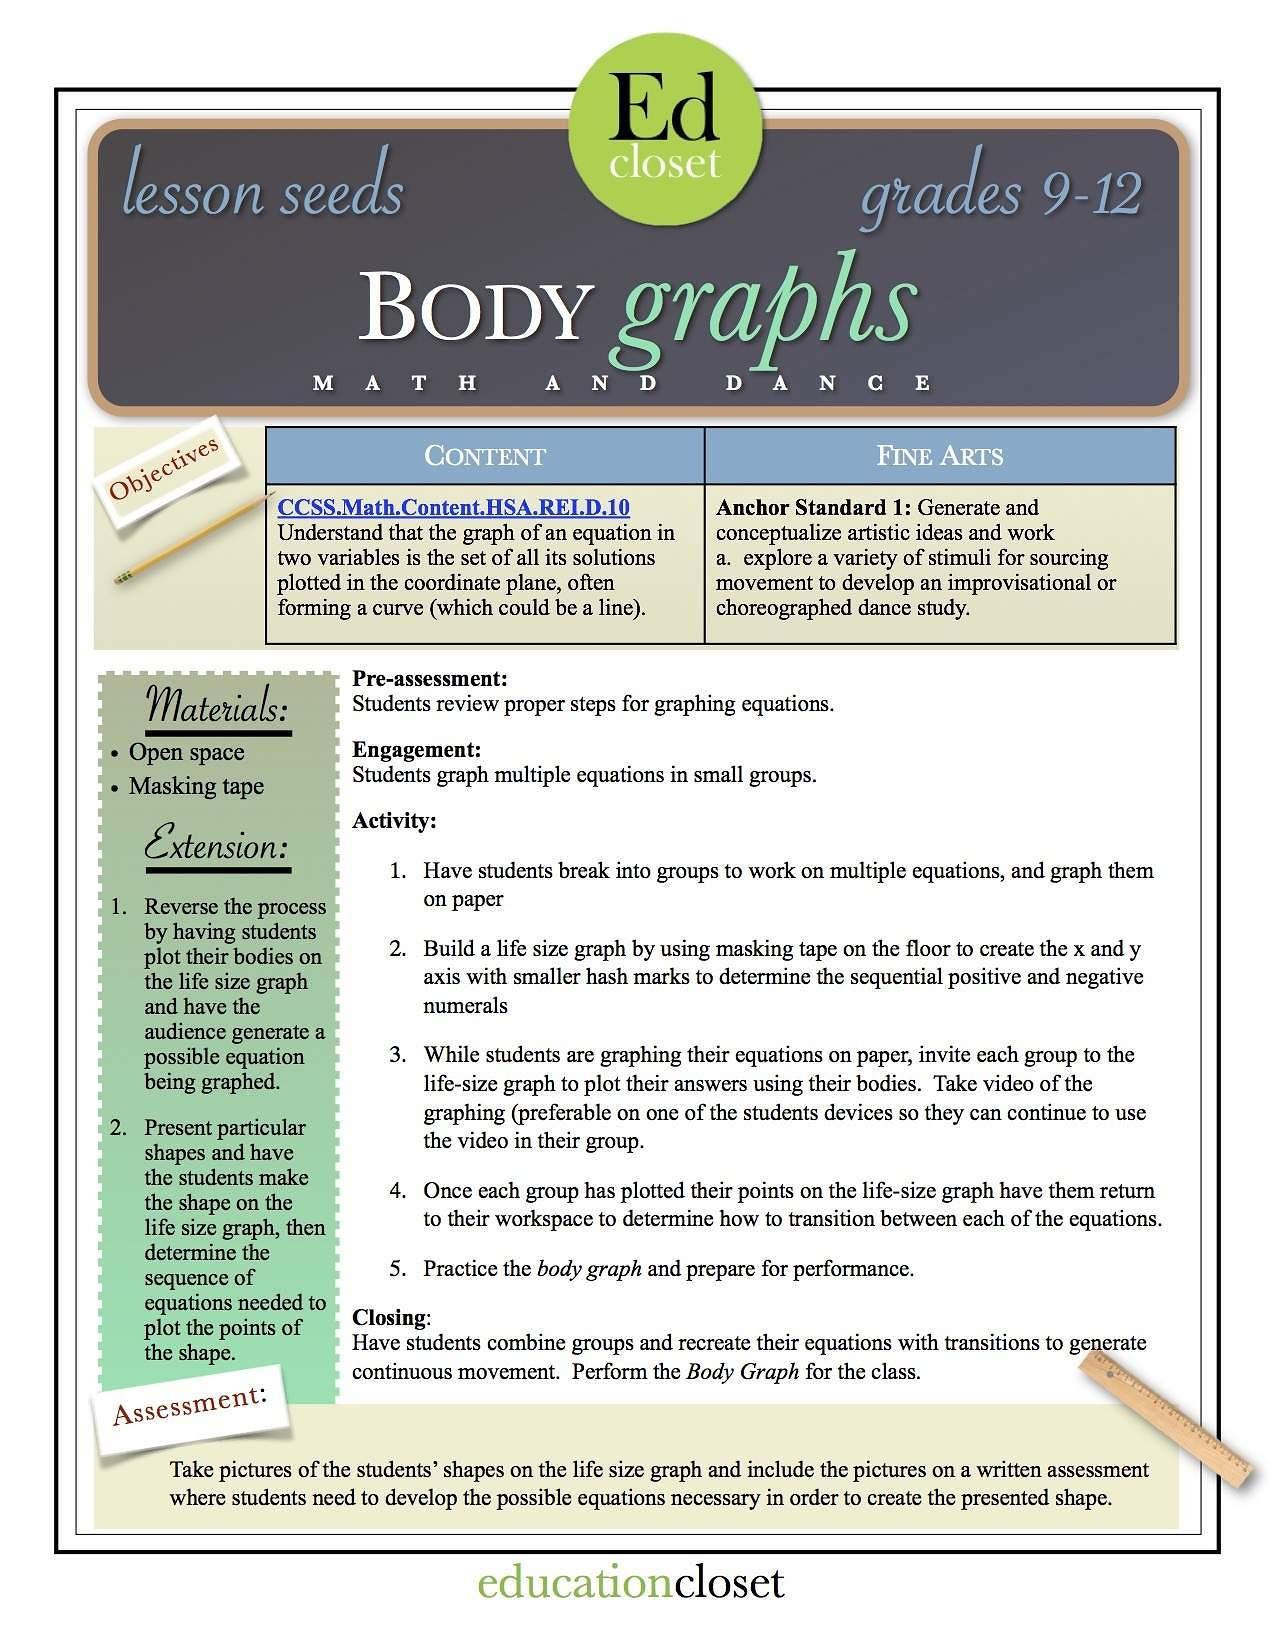 body graphs lesson, Studio STEAM-Up Recap, Education Closet